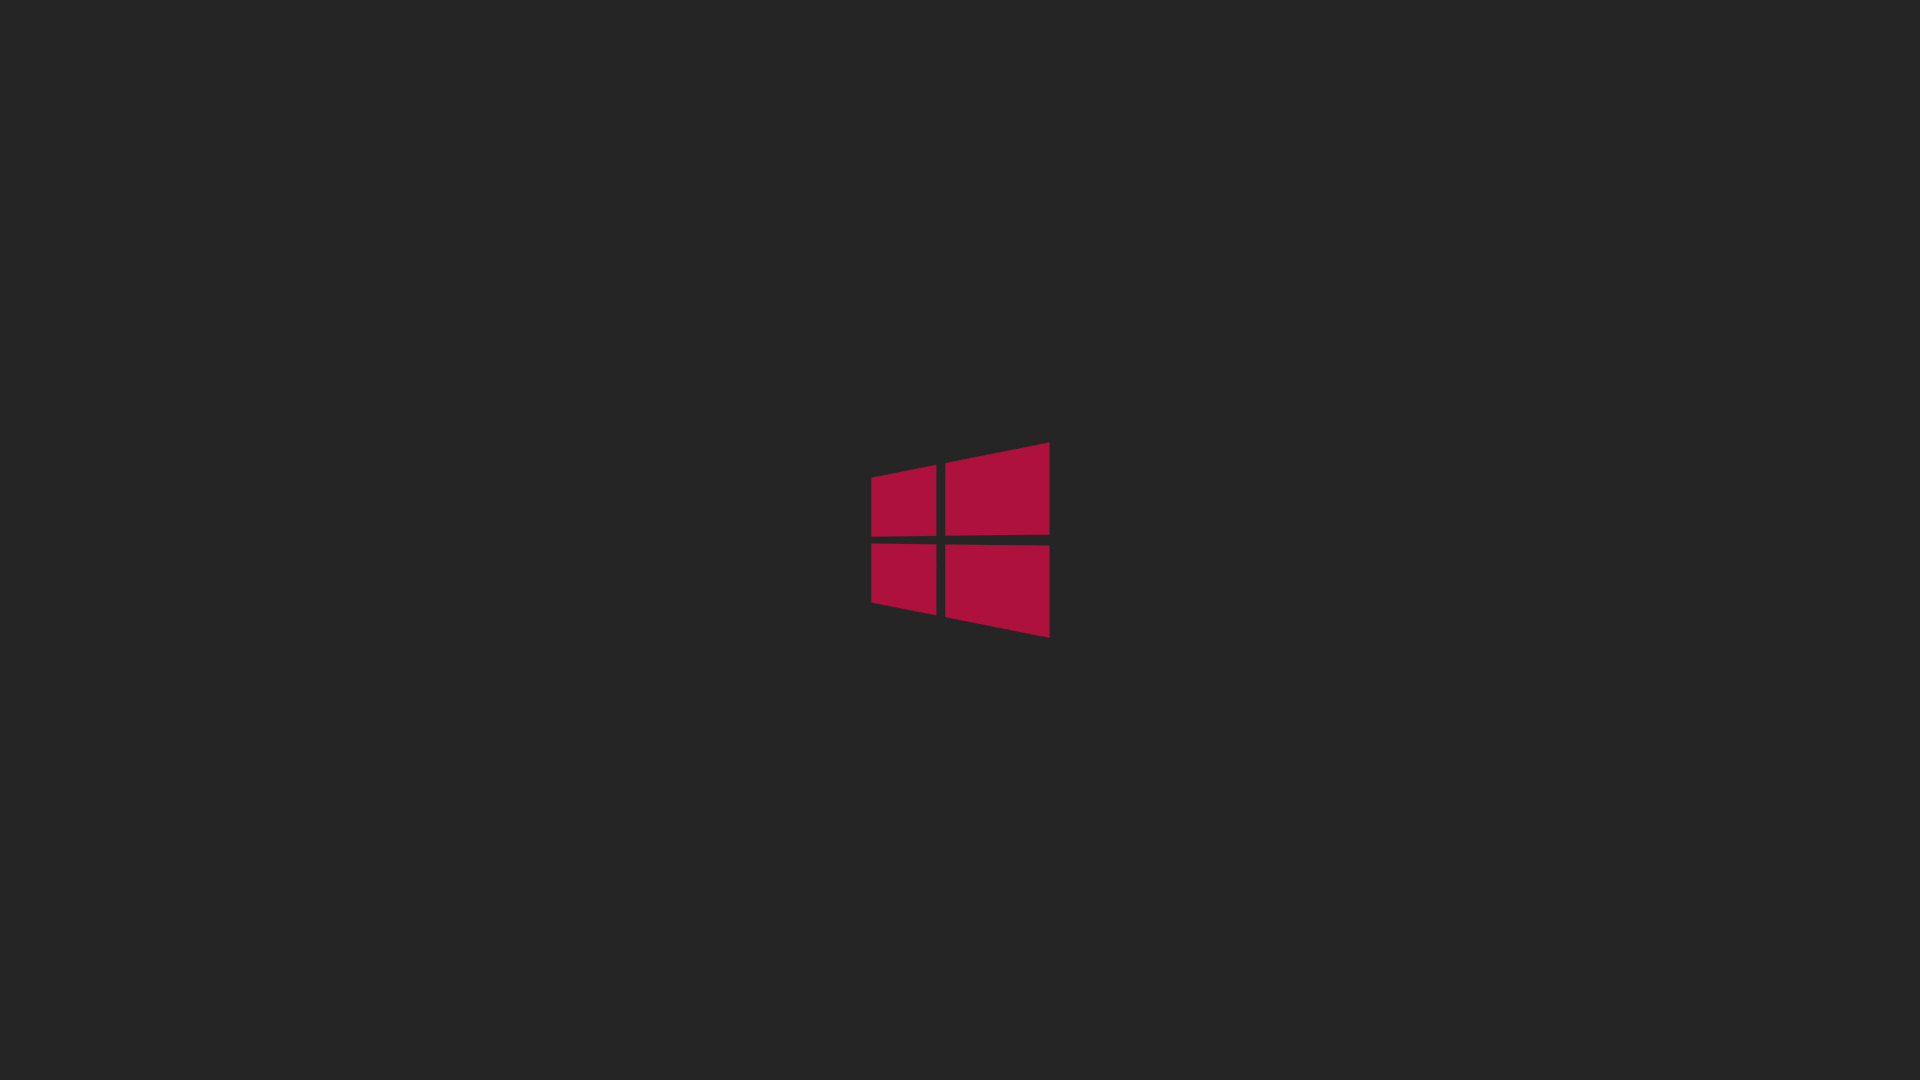 Windows 8 Logo With Red Logo And Black Background Hd Wallpapers